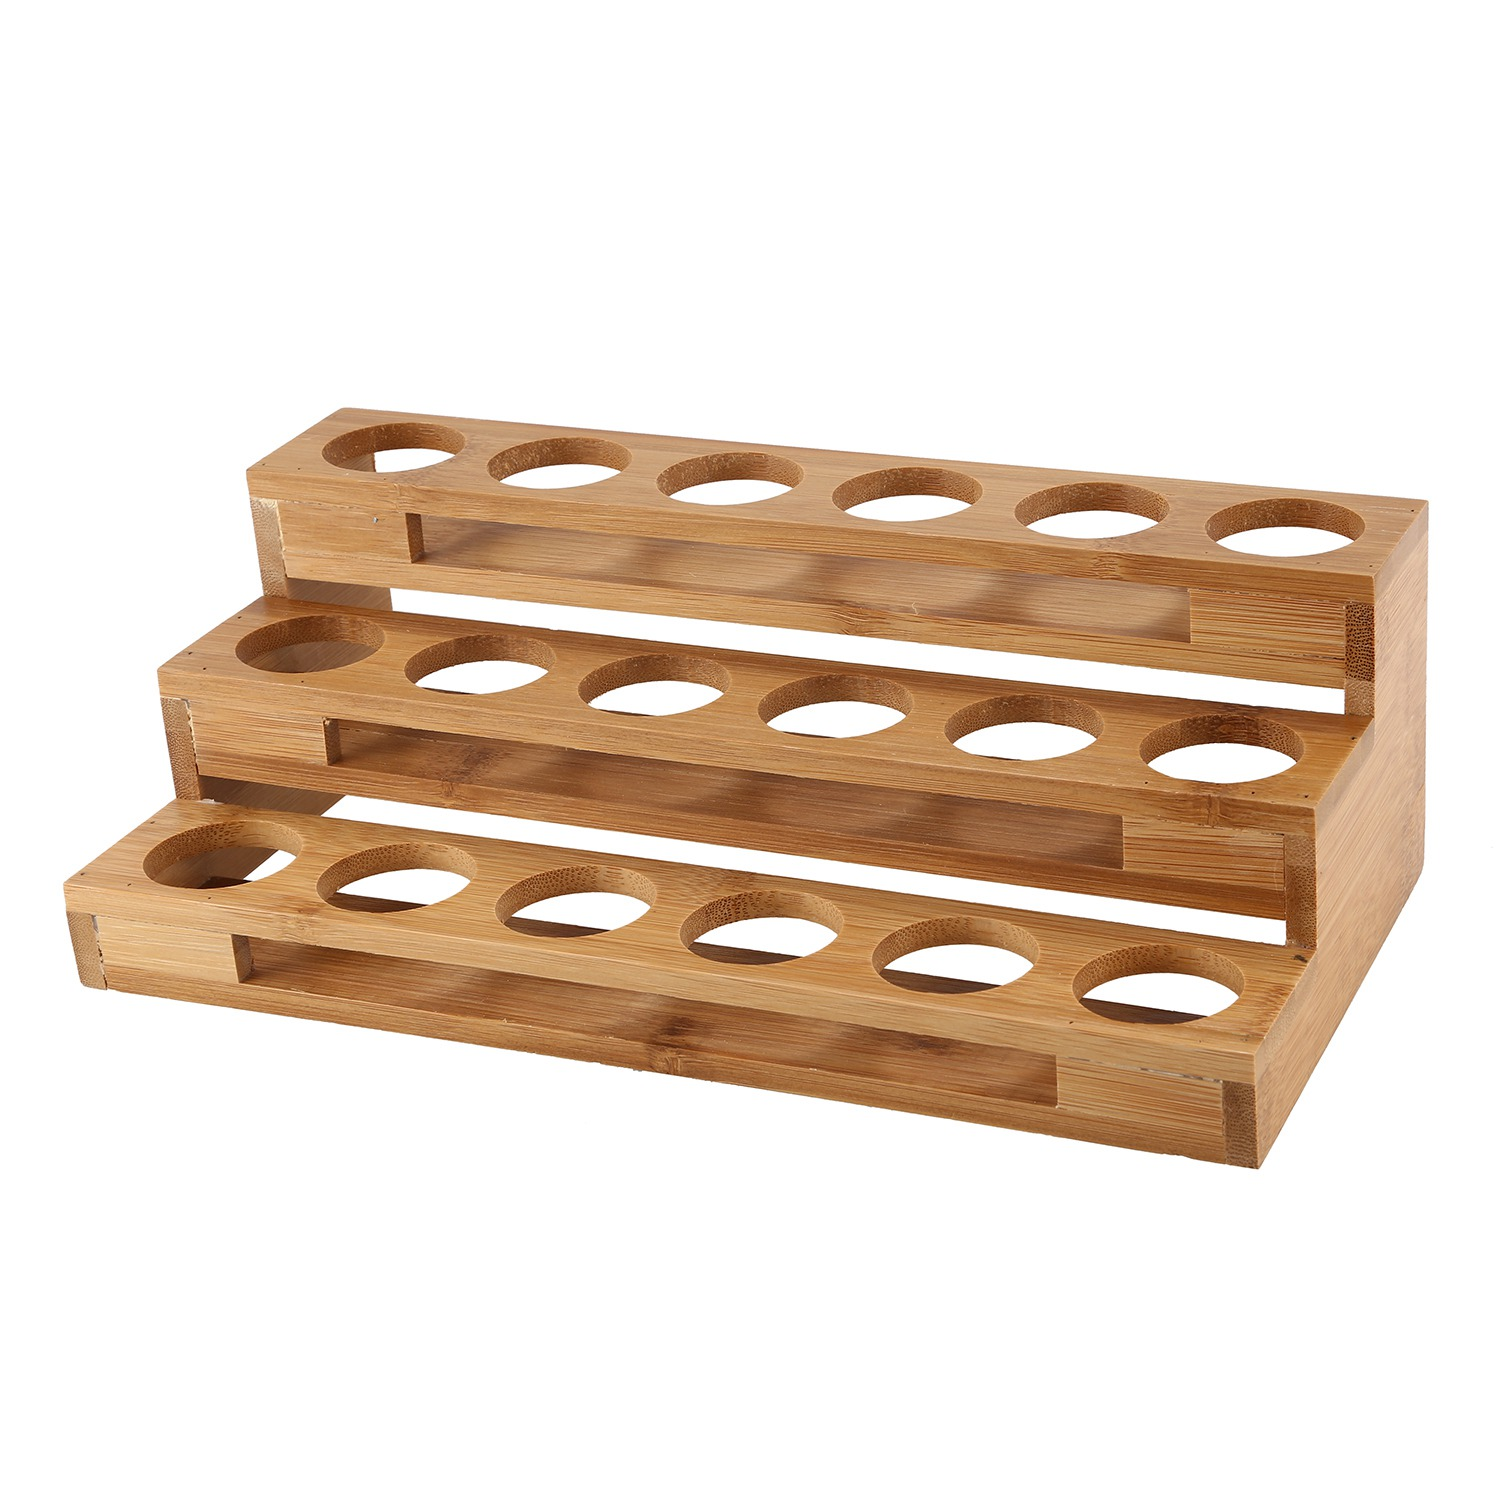 New Bamboo 18 Holes Essential Oil Display Wooden Stand